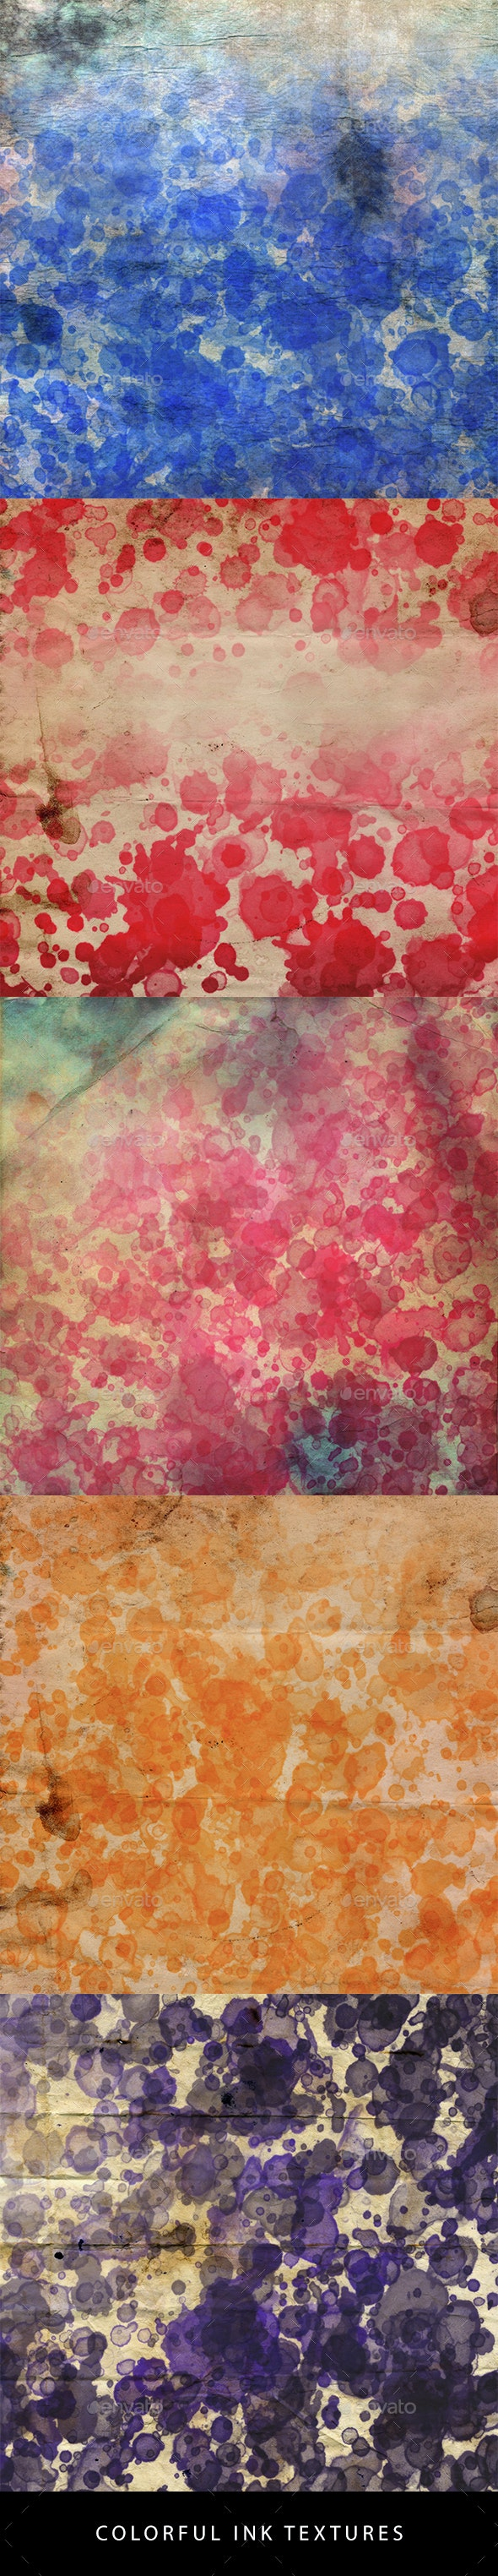 Colorful Ink Textures - Backgrounds Graphics